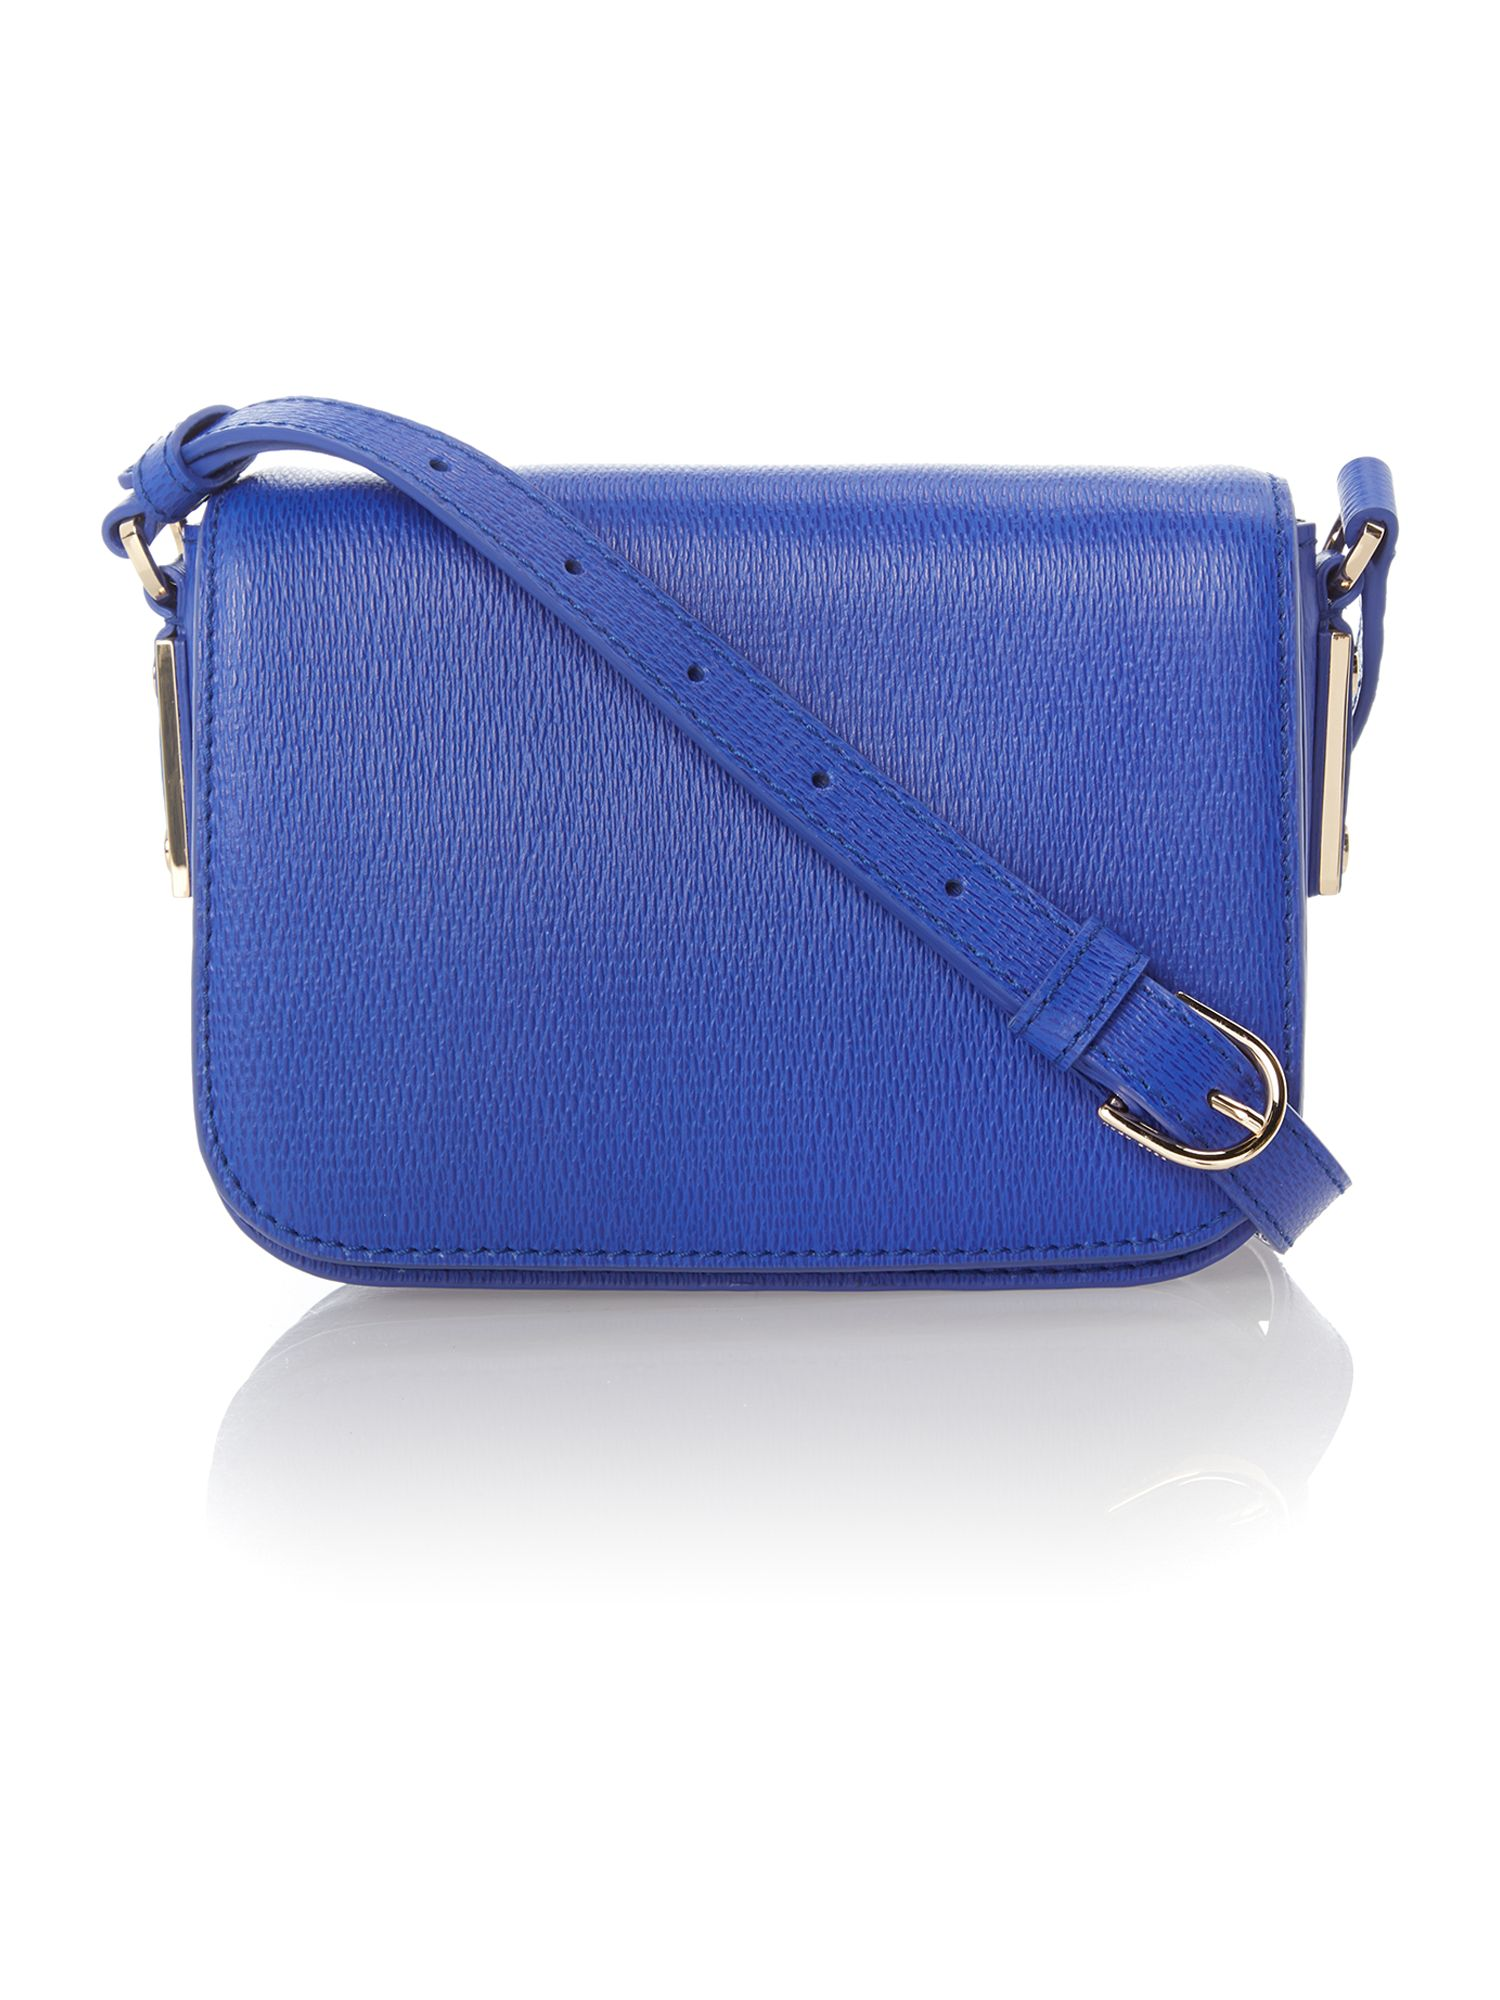 Melia blue small cross body bag